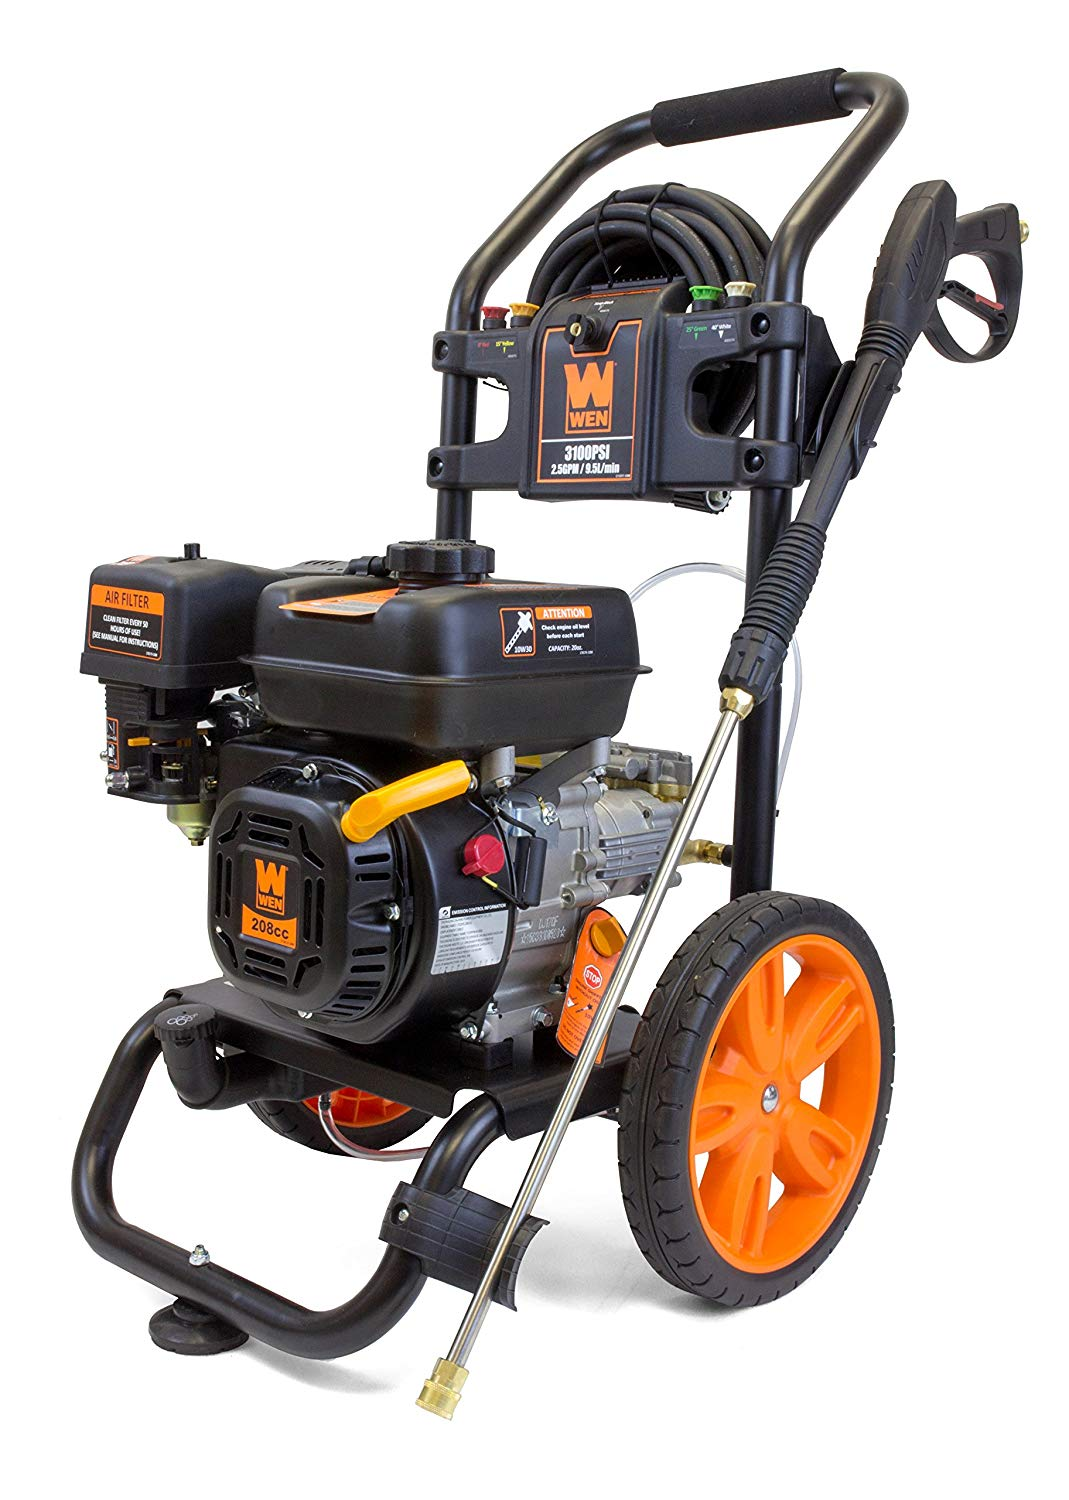 WEN PW3100 3100 PSI Gas Pressure Washer